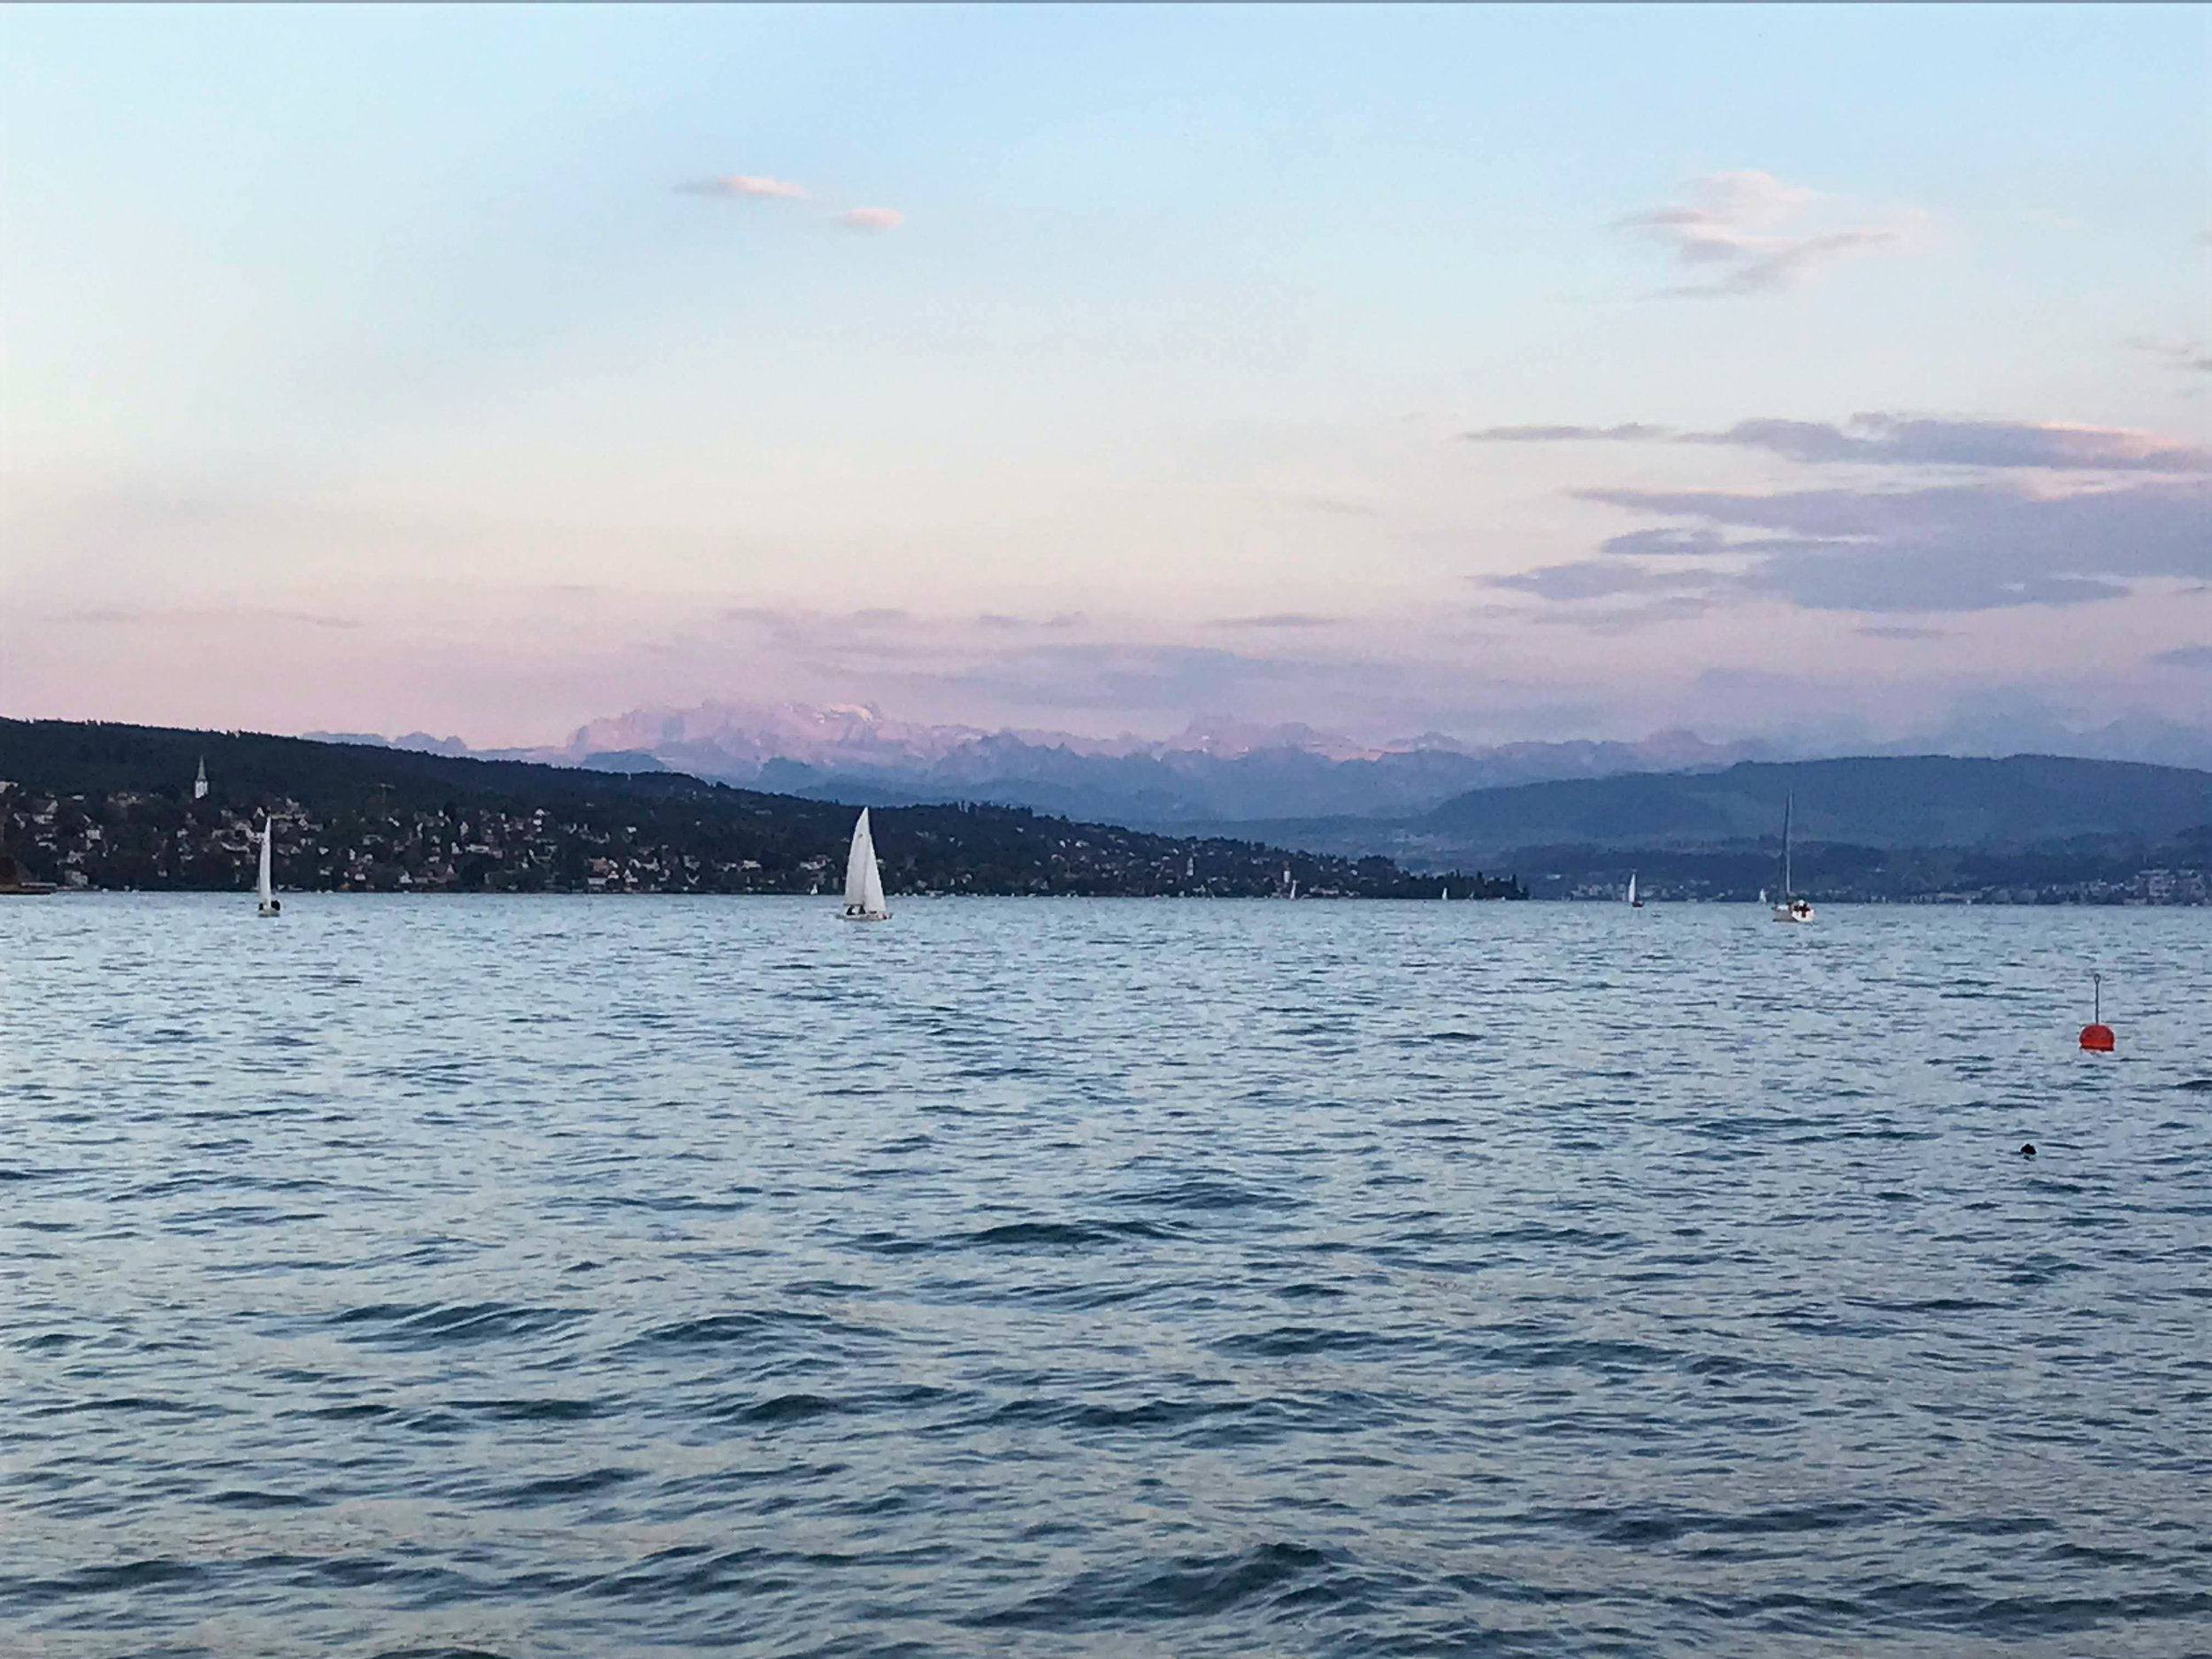 Lake Zurich just after sunset, which I've dubbed the pink hour.